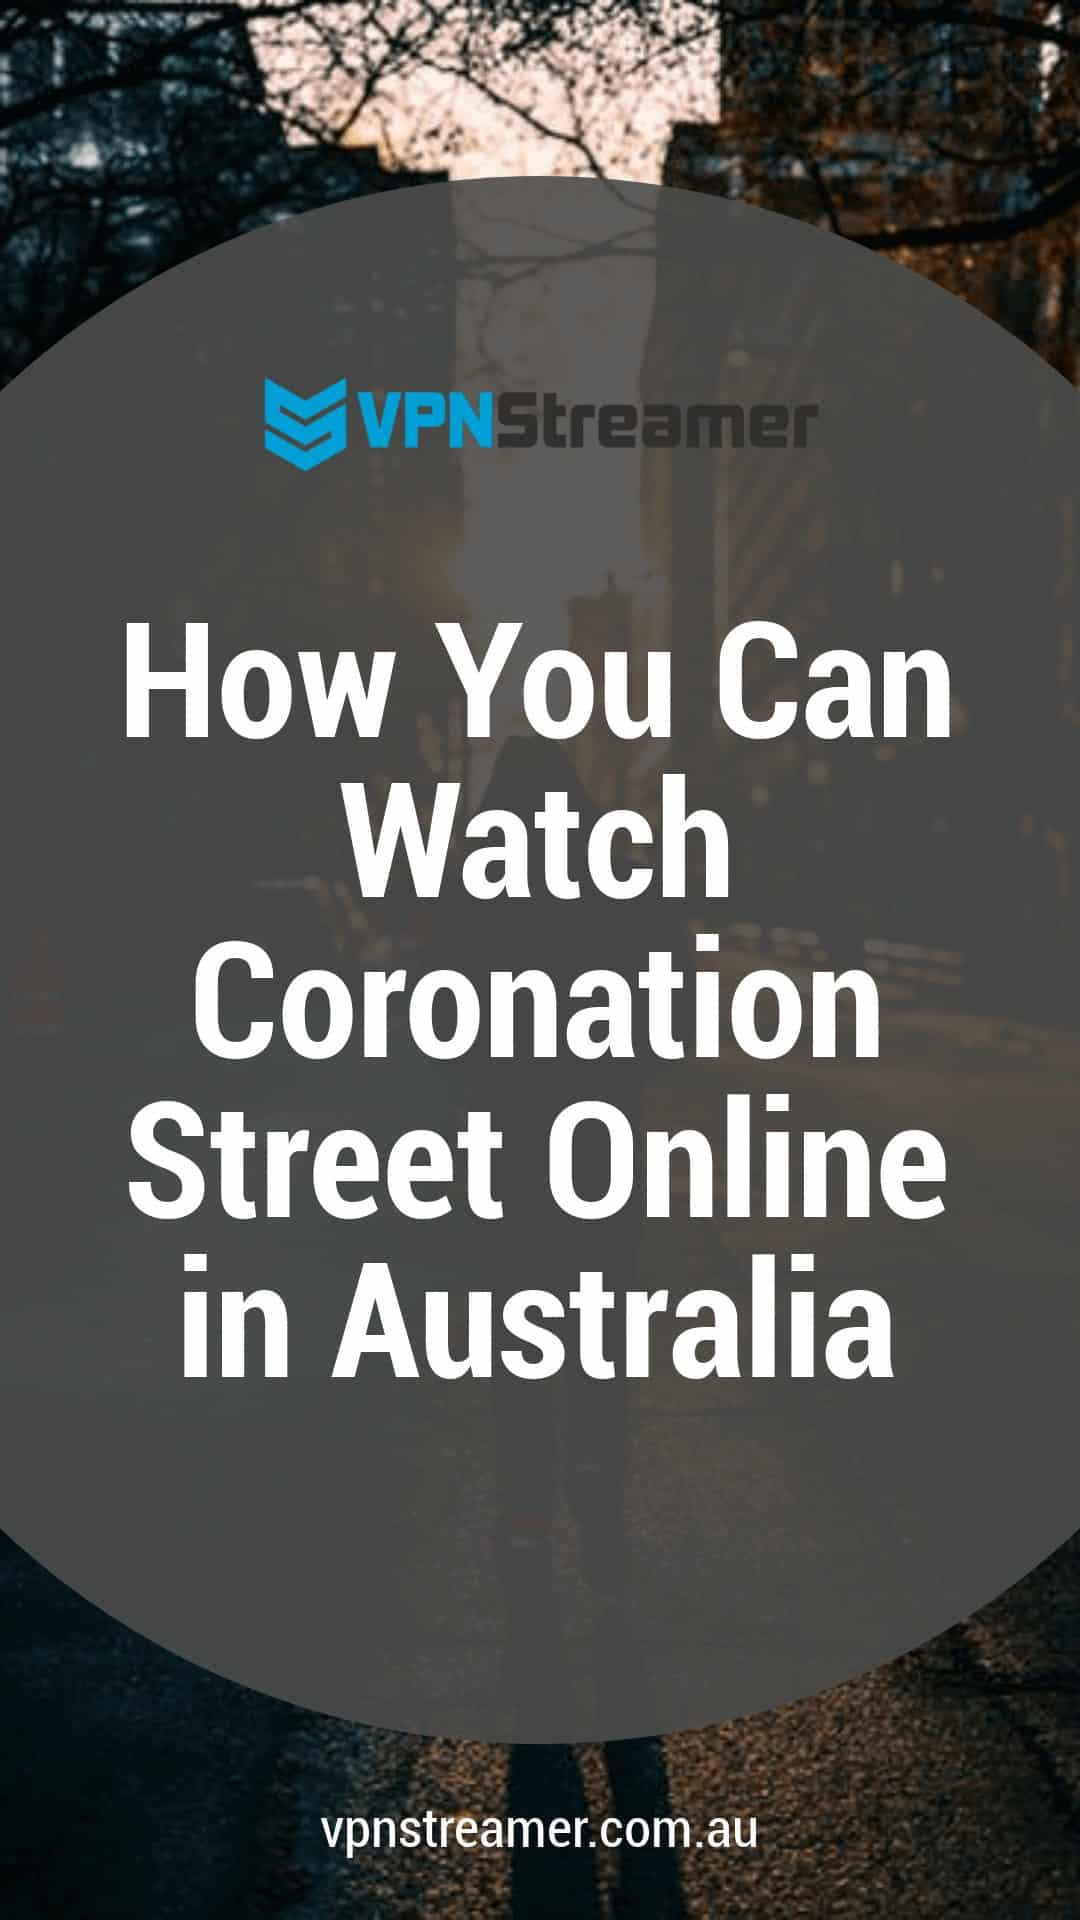 How You Can Watch Coronation Street Online in Australia